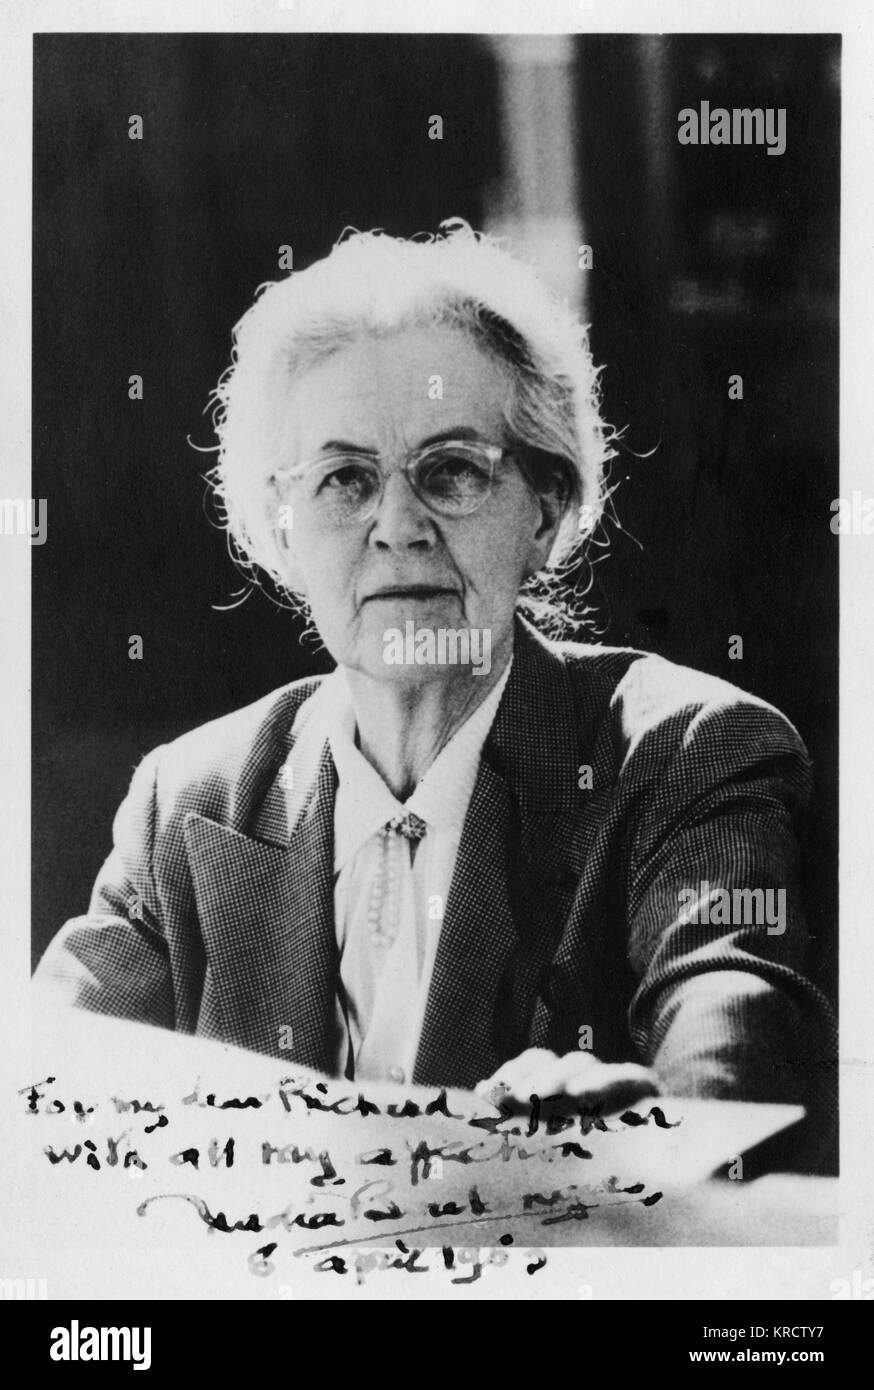 NADIA-JULIETTE BOULANGER (1887-1979), French music teacher and conductor. Her students included Aaron Copland, Roy - Stock Image